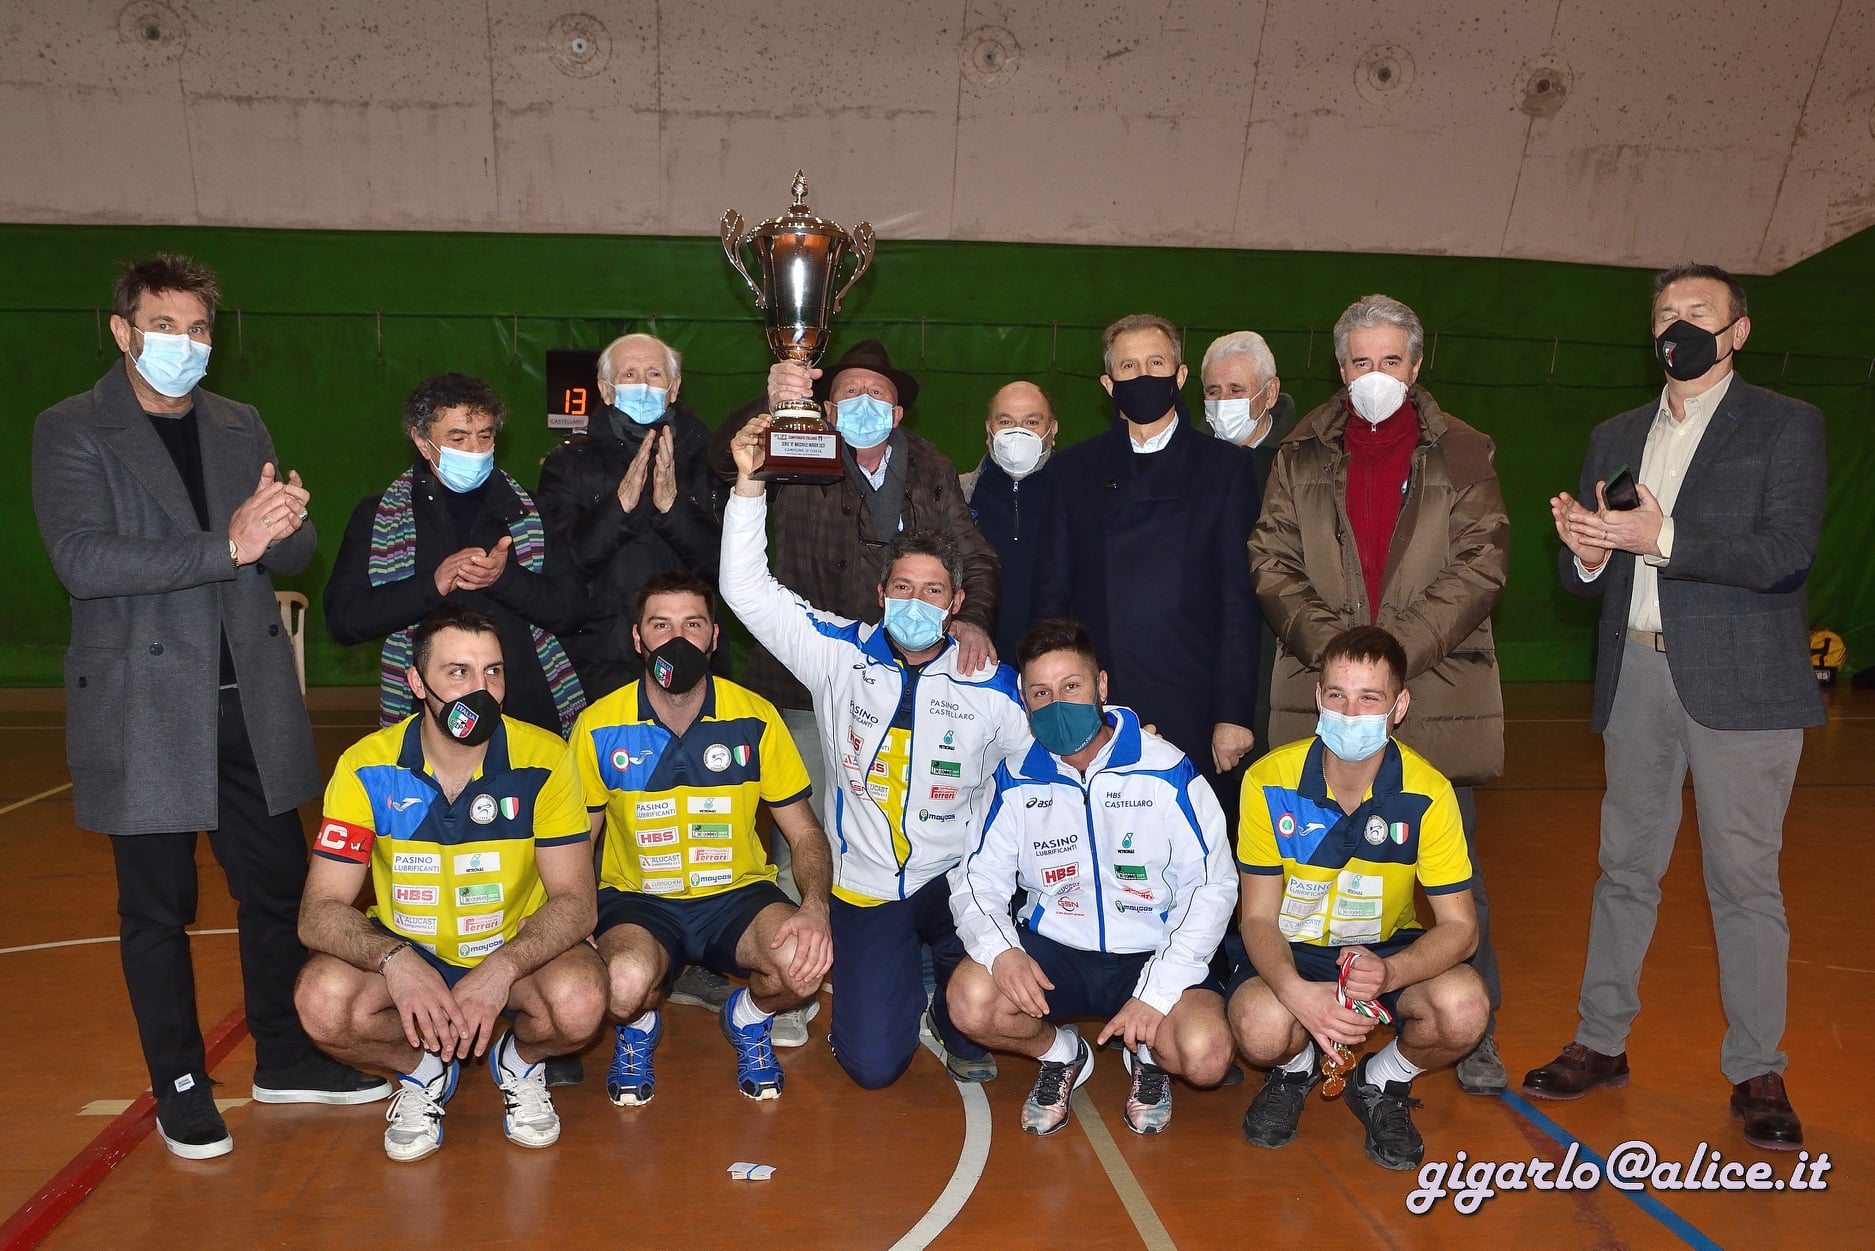 images/News_2021/Serie_A_INDOOR-Maschile/23-24.01.2021/141859937_4497794353571119_8699514379949576927_o.jpg